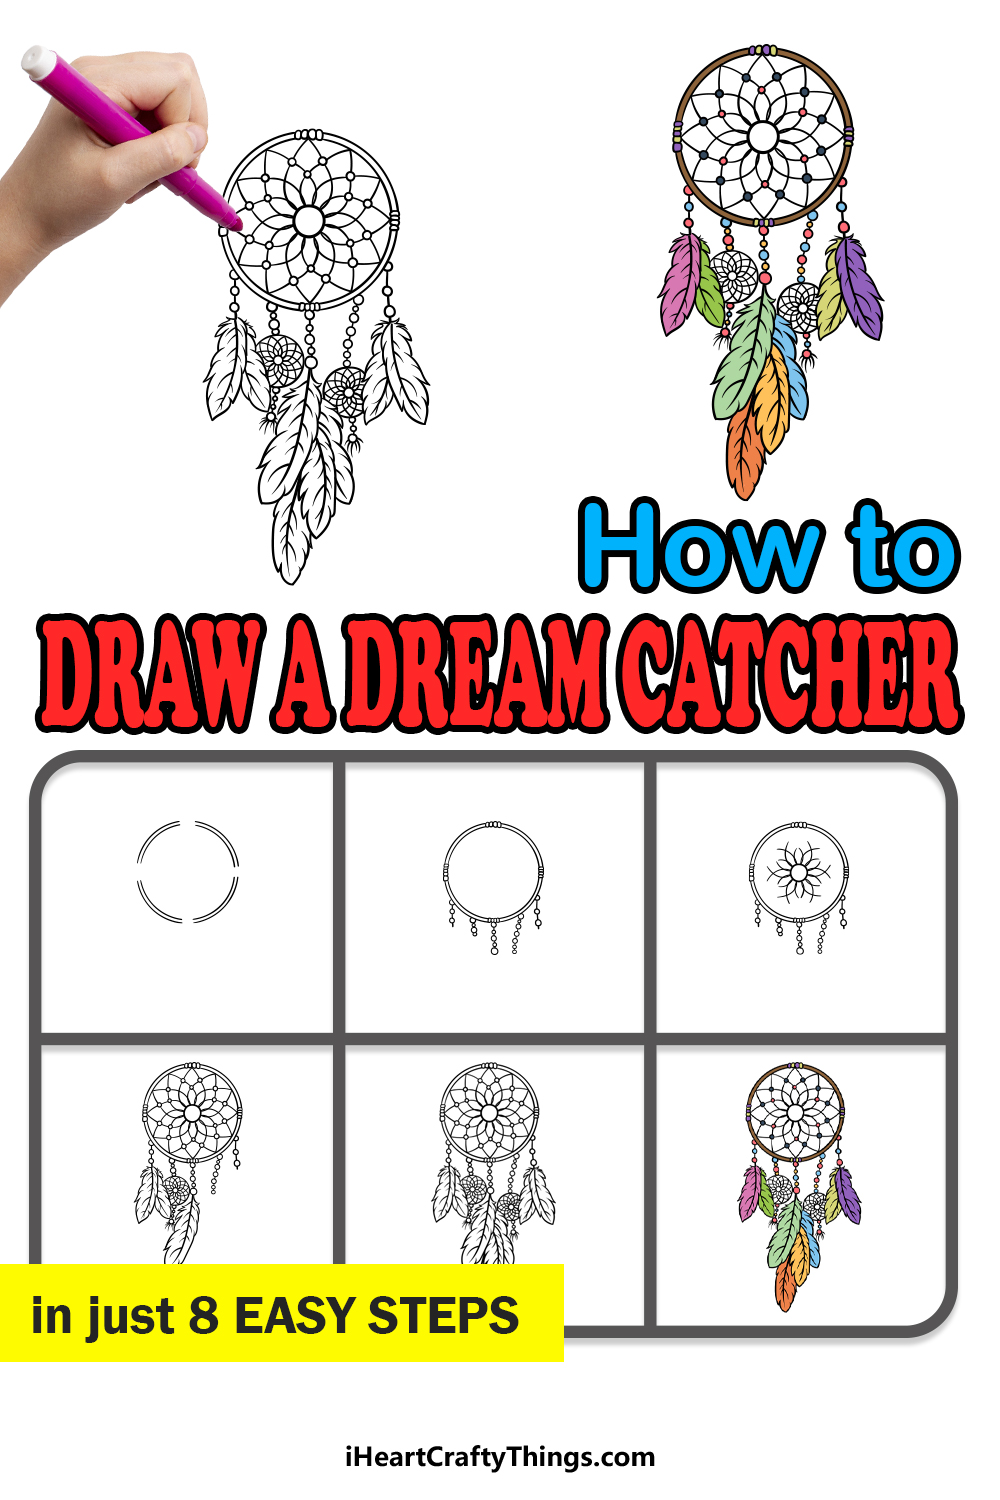 how to draw dream catcher in 8 easy steps